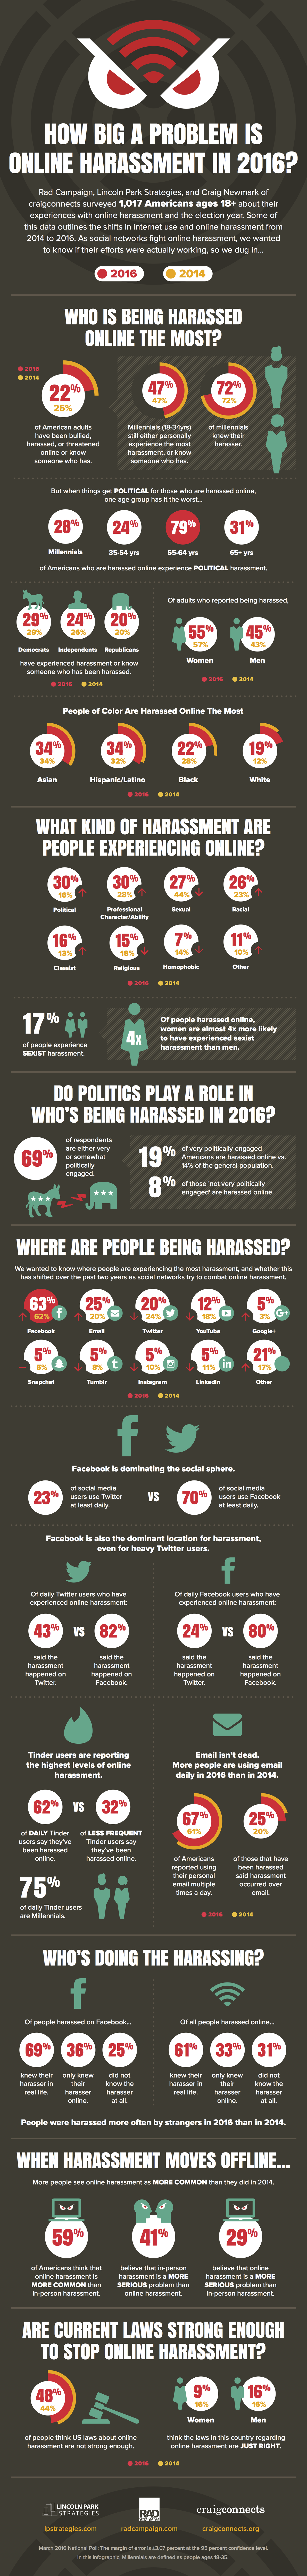 How Big a Problem is Online Harassment in 2016?